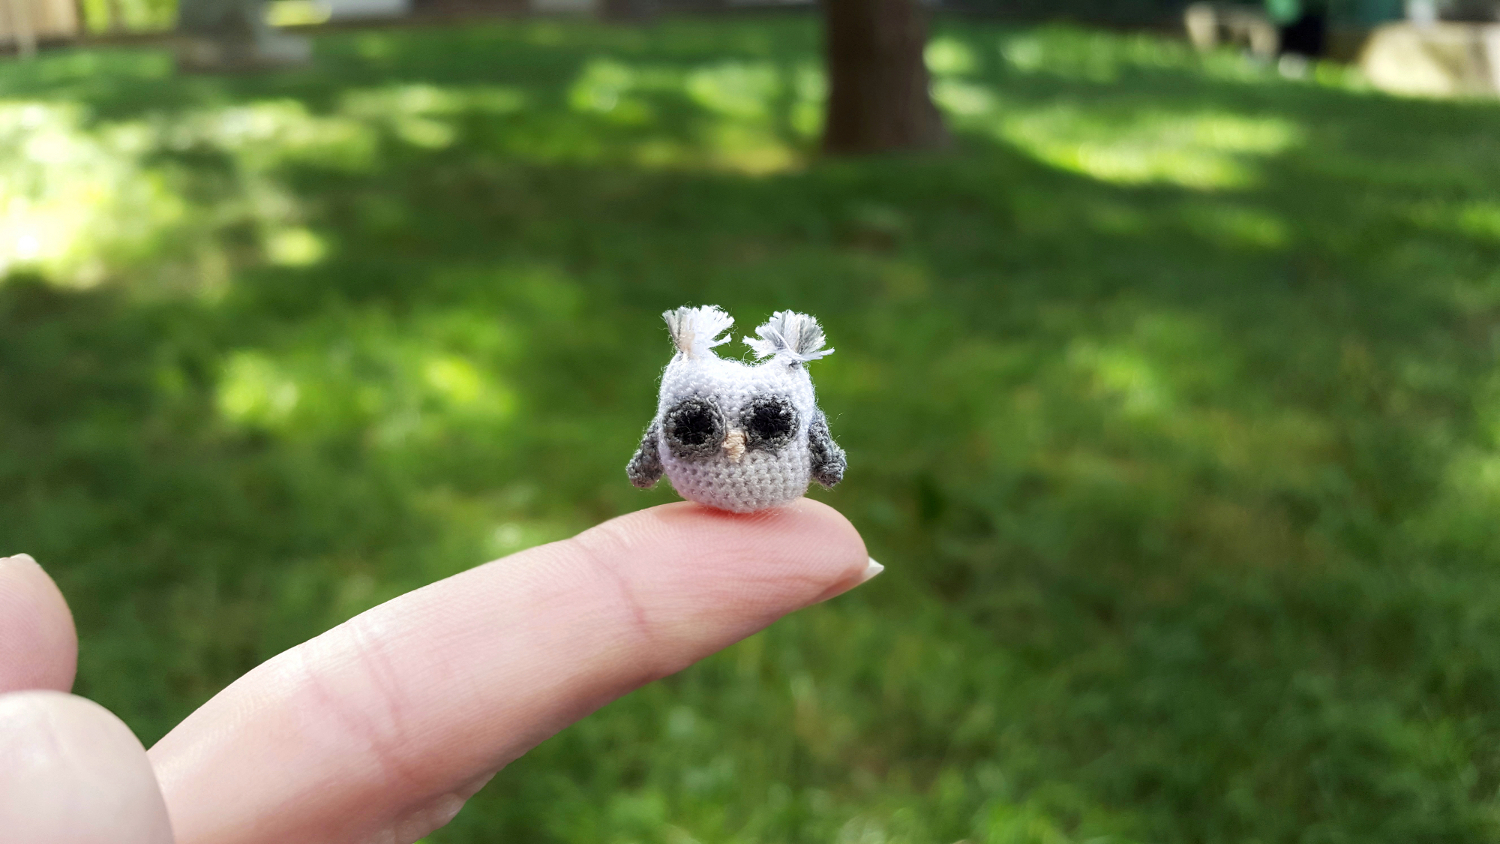 Amigurumi - miniature talisman toys with their own hands